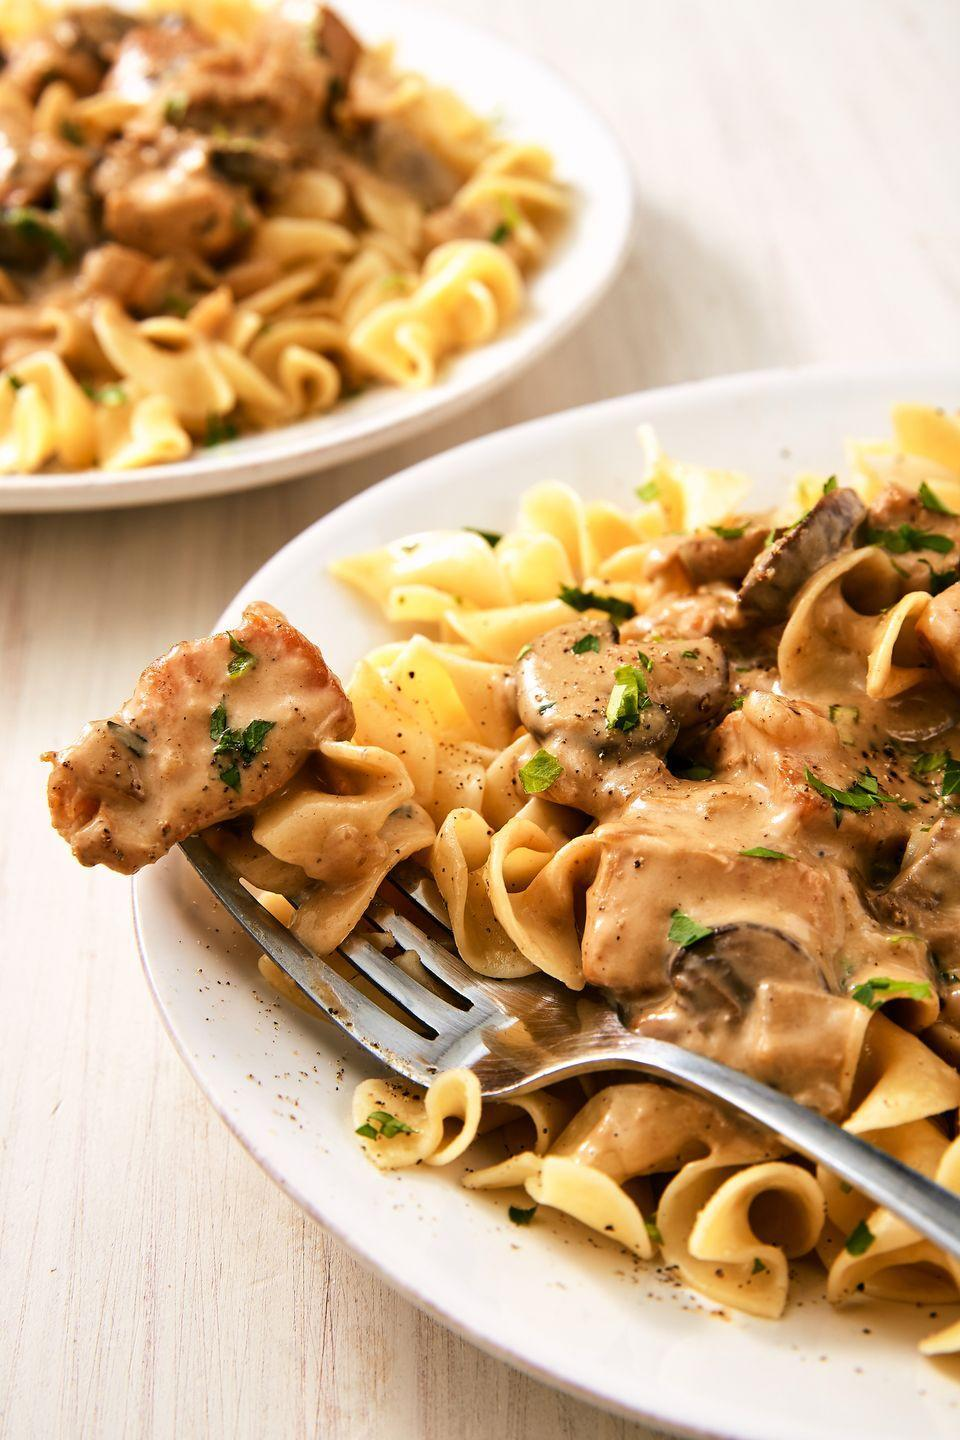 """<p>A bit lighter than the original beef stroganoff, but just as flavorful!</p><p>Get the recipe from <a href=""""https://www.delish.com/cooking/recipe-ideas/a25647973/chicken-stroganoff-recipe/"""" rel=""""nofollow noopener"""" target=""""_blank"""" data-ylk=""""slk:Delish"""" class=""""link rapid-noclick-resp"""">Delish</a>. </p>"""